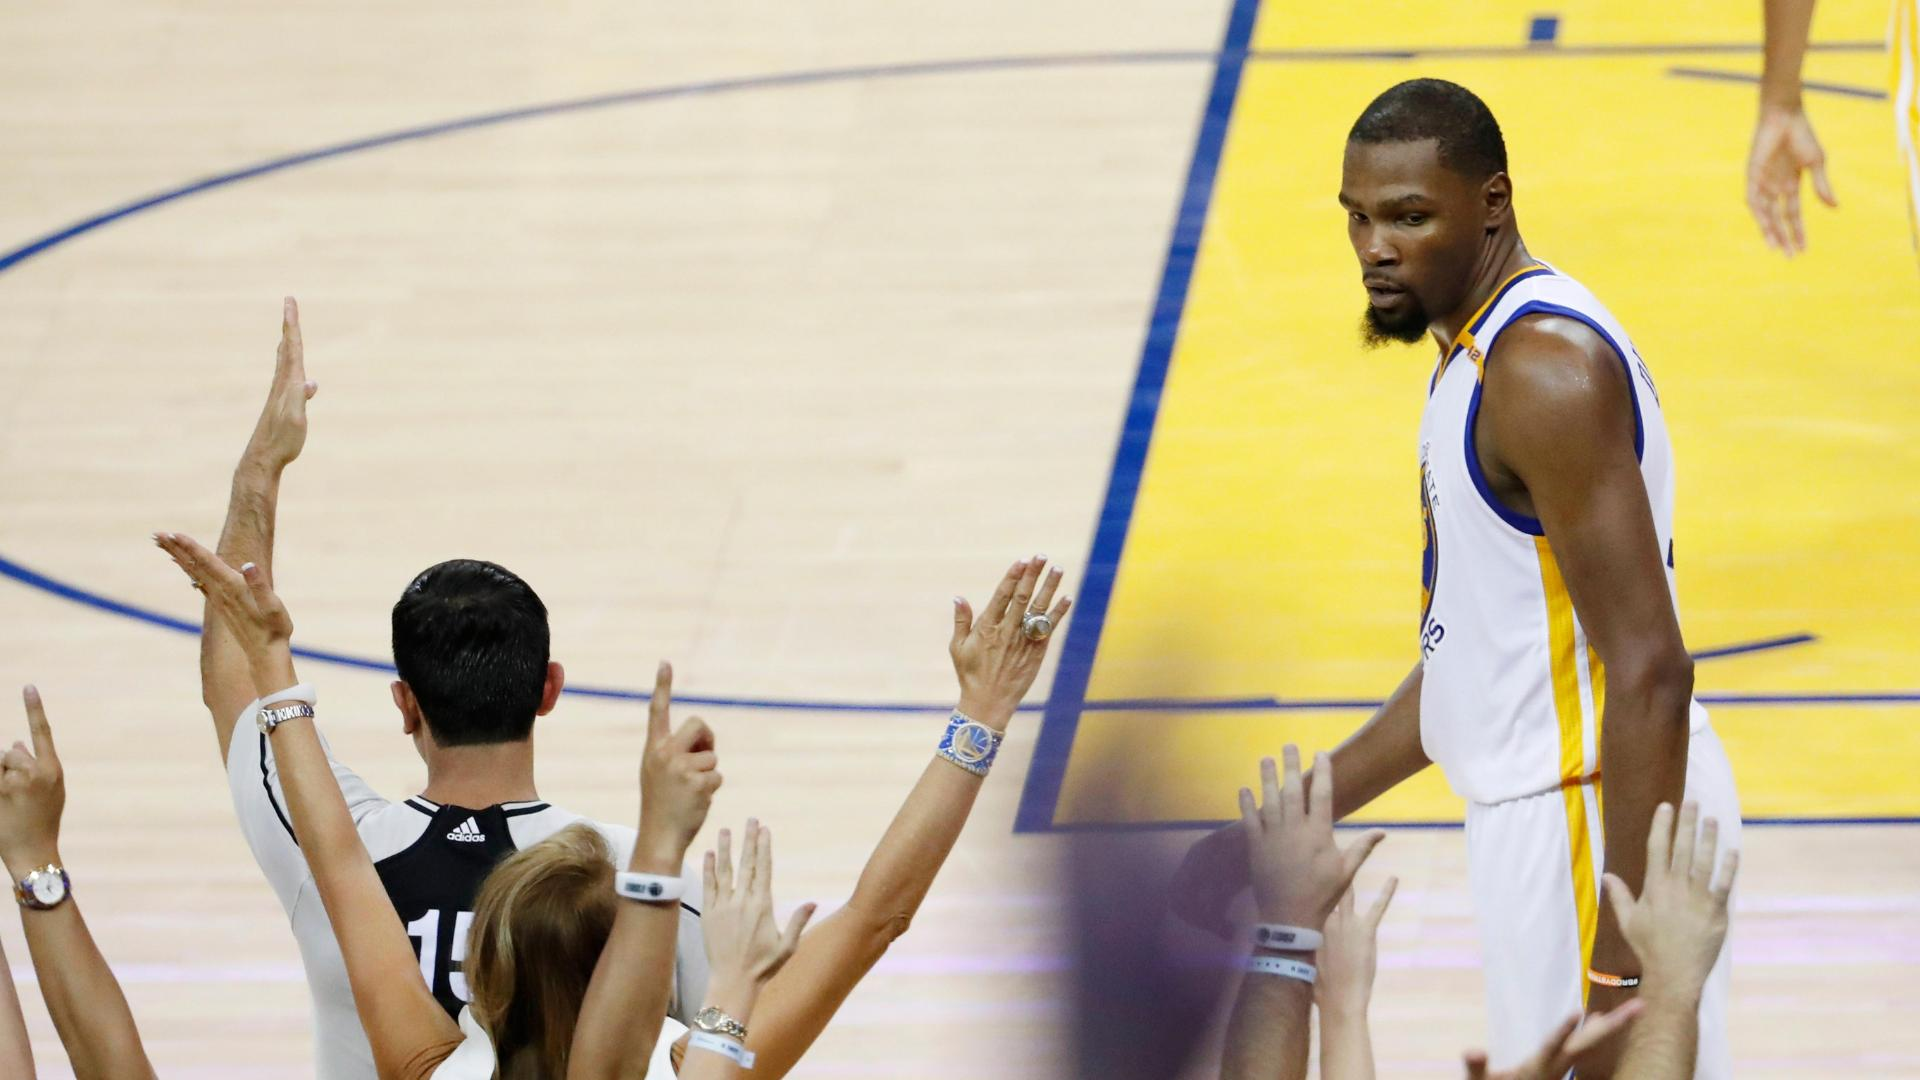 a9551666eb7c Kevin Durant says he doesn t remember Rihanna staredown - ABC News